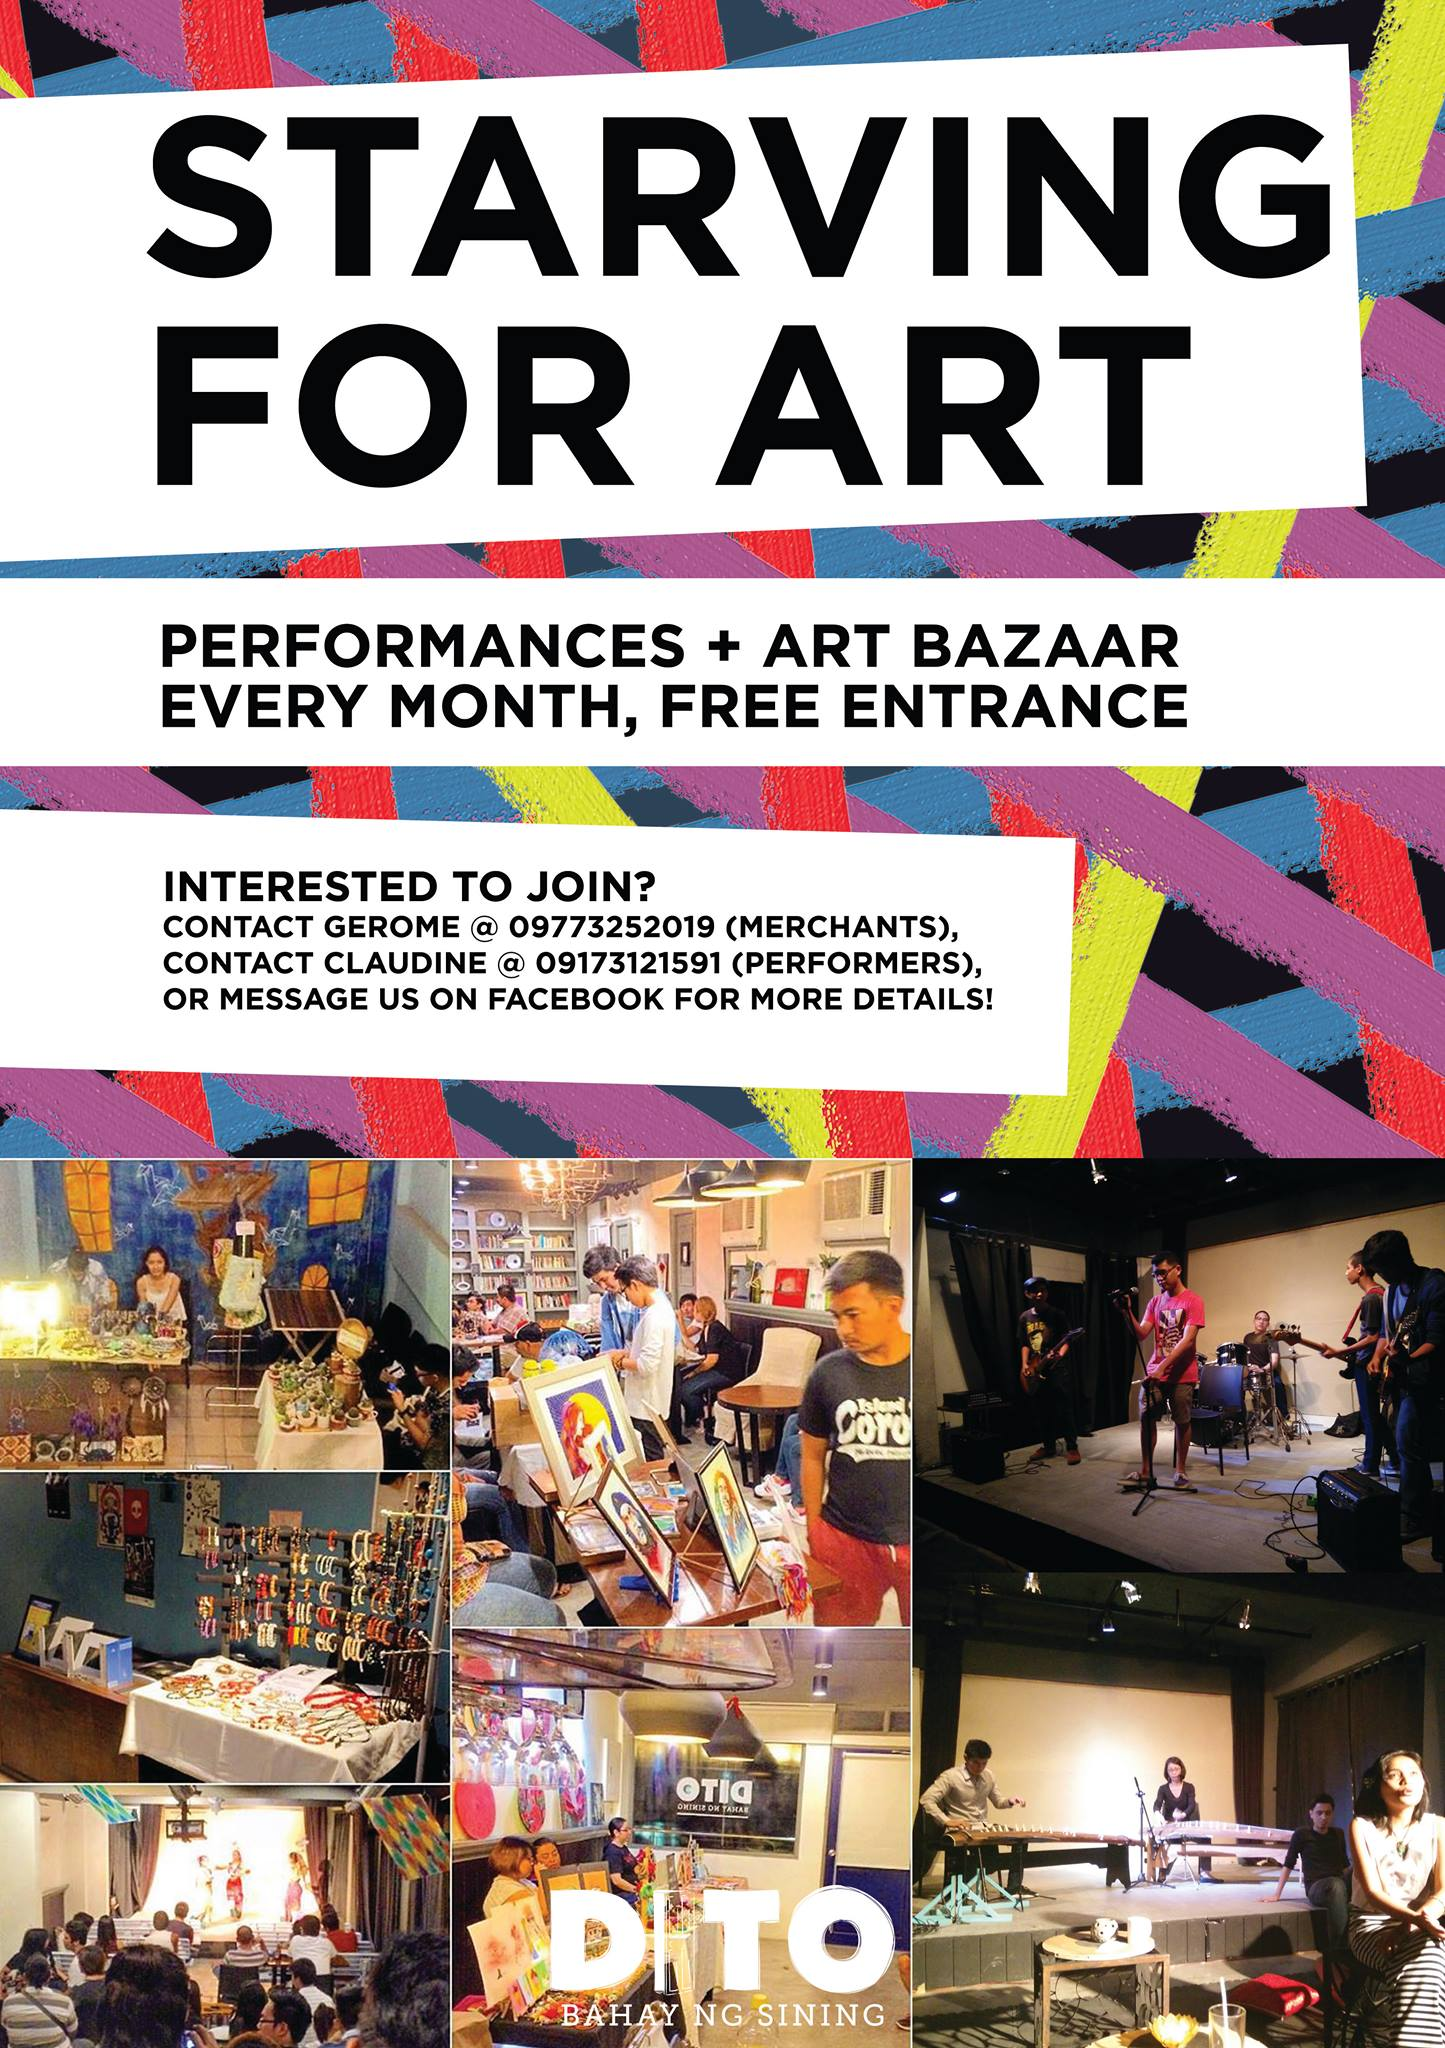 STARVING FOR ART (BAZAAR AND PERFORMANCES) clock Saturday, November 28 at 4:00pm 3 days ago pin Show Map DITO: Bahay ng Sining J. Molina Street, 1807 Marikina City Come one, come all to the most creative November gathering in the metro. DITO: Bahay ng Sining presents STARVING FOR ART!!! Starving for Art is a monthly artfest at DITO: Bahay ng Sining. Performers can get the stage for free, and they can astound us with whatever art form they wish to present on stage for 5 to 20 minutes. Local artisans sell their amazing wares. And you get all the action for free this Nov 28! ---- DITO: Bahay ng SiningSTARVING FOR ART (BAZAAR AND PERFORMANCES) Page Liked · November 24 · STARVING FOR ART| Nov 28, 2015 5PM-12MN It's that time of the month again! DITO's monthly art bazaar con vaudeville is opening it's arms to you, you, and you! Come one, and all. Entrance is Free! We are all starving, and we demand to be fed. BAZAAR opens at 5PM PERFORMANCES start at 7.30PM List of Acts in Chronological Order 1. Tiemponado (Music) 2. Arielle Ison (Spolen Word) 3. Roseball Toledo (Spoken Word) 4. Lahing Kayumanggi Student Division (Dance) 5. Ian Sudiacal (Spoken Word) 6. XDV 4th World Joseph James Villena Salvador (Music) 6. Machi Sagana and Franceska Mungcal (Spoken Word) 7. Ian Baluca (Film + Music) 8. Transfuse (Spoken Word + Dance) 9. Paolo Dumlao (Spoken Word) 10. Lahing Kayumangi (Dance) EVERYONE IS HAPPY DRUNK BY 12 MN.